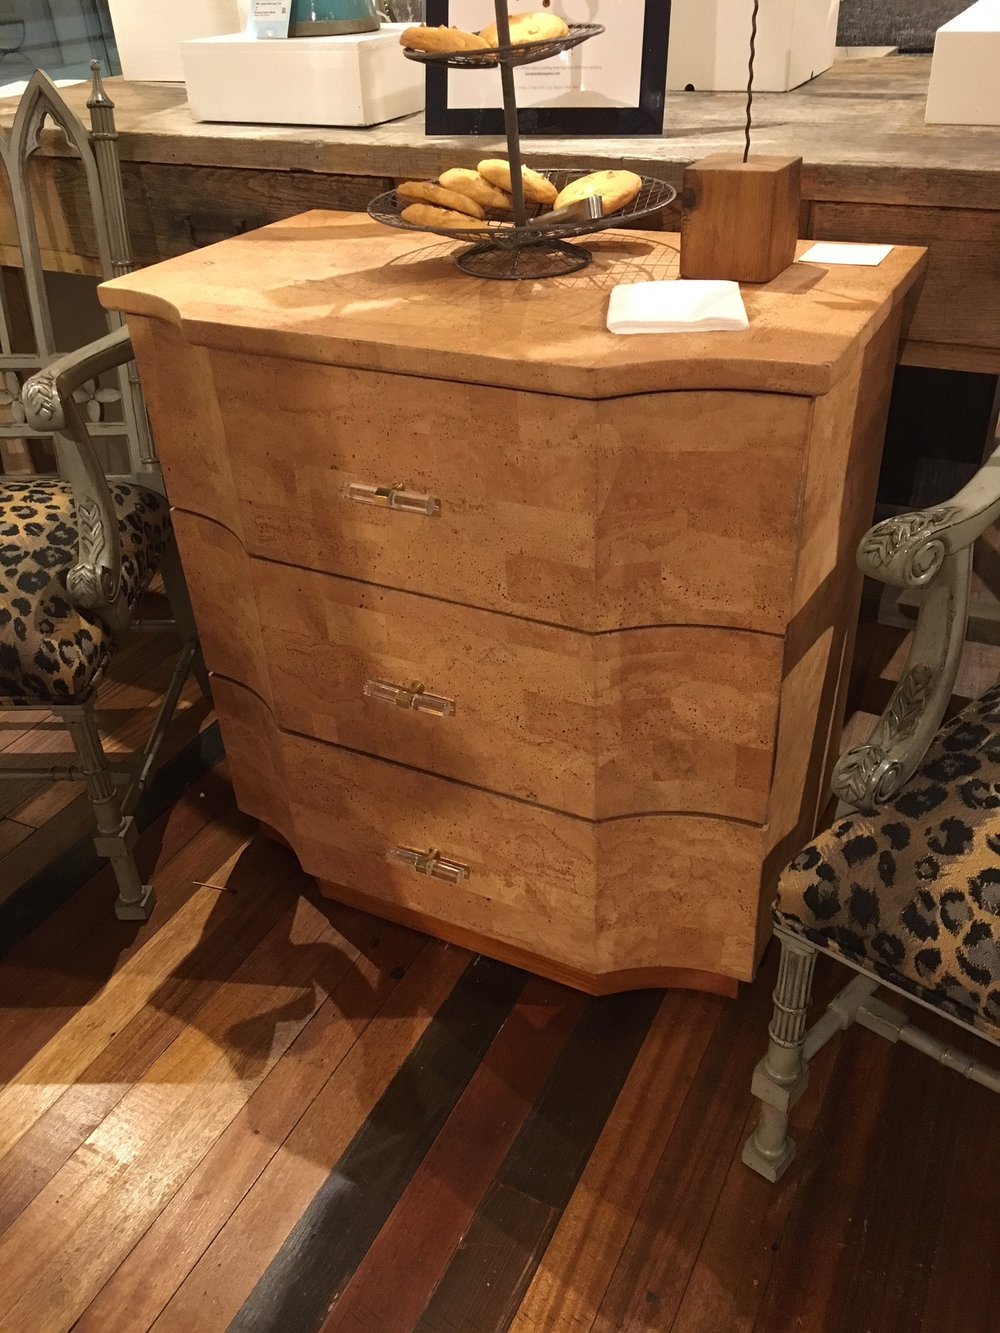 Loved this cork dresser from  Currey & Company . Clean lines, great texture and really digging the lucite and brass hardware. Three drawer nightstands are my favorite for ample storage and a pretty look.